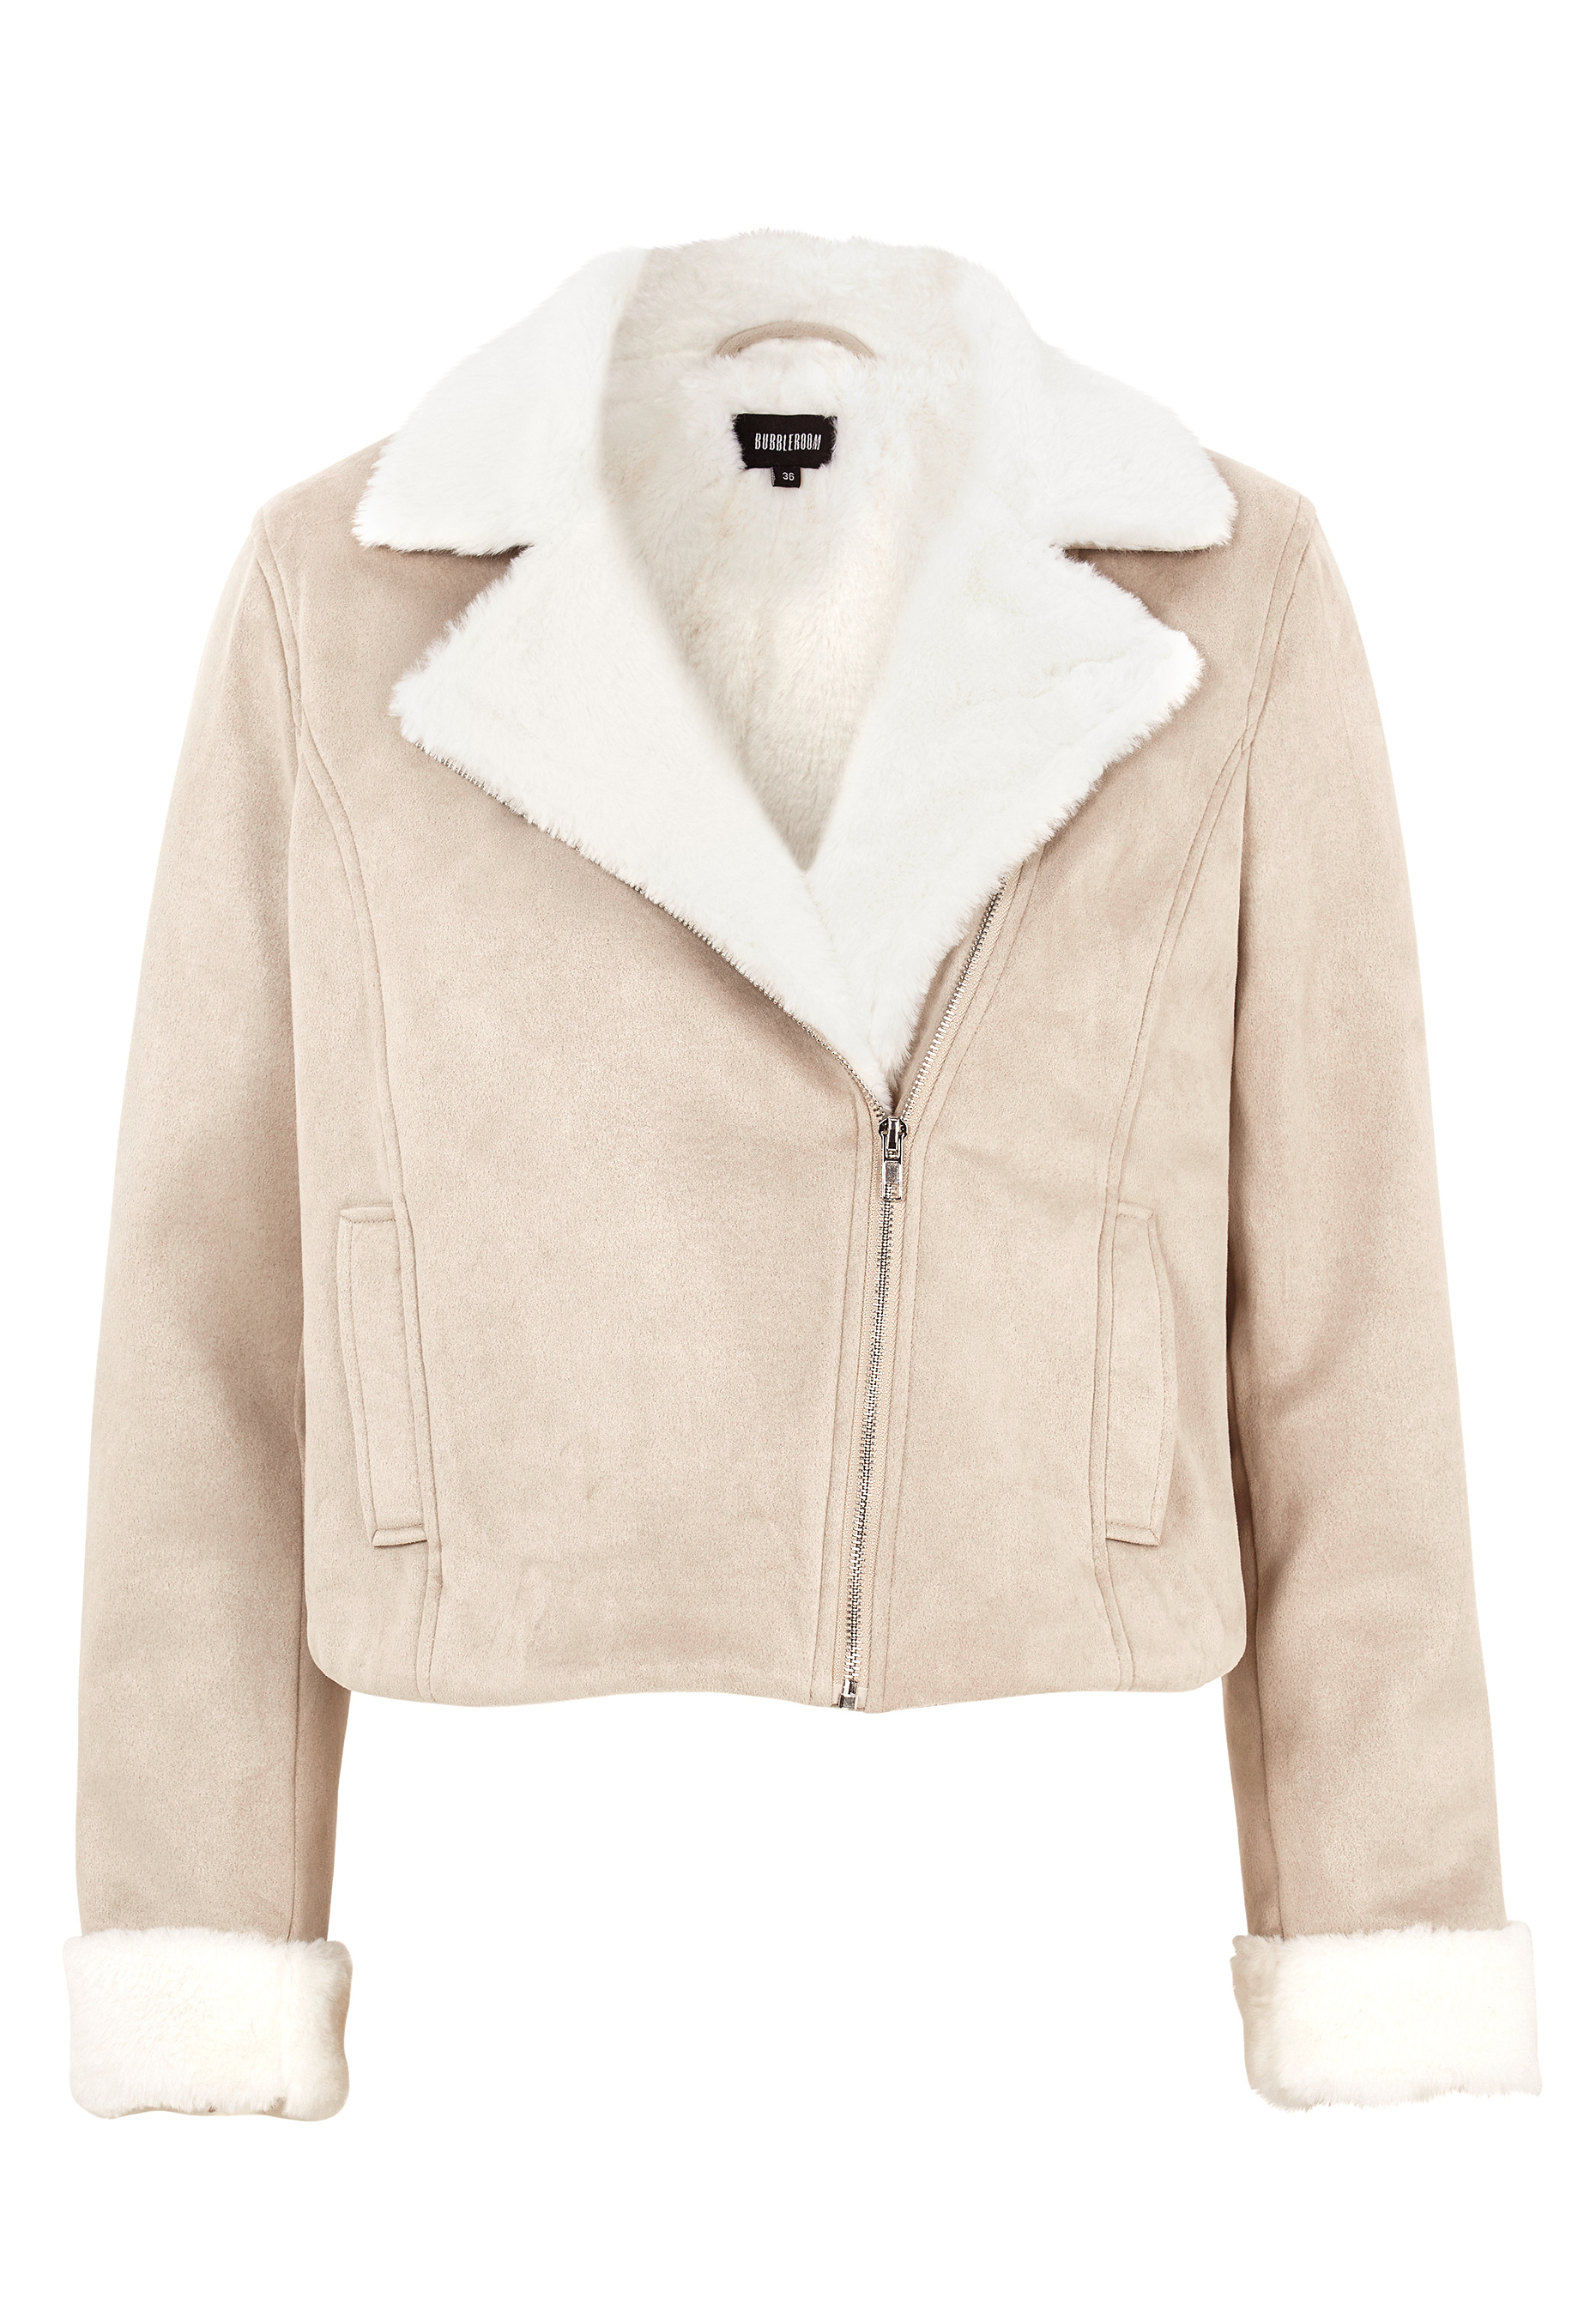 cheap prices excellent quality enjoy best price BUBBLEROOM Julia biker jacket Beige - Bubbleroom